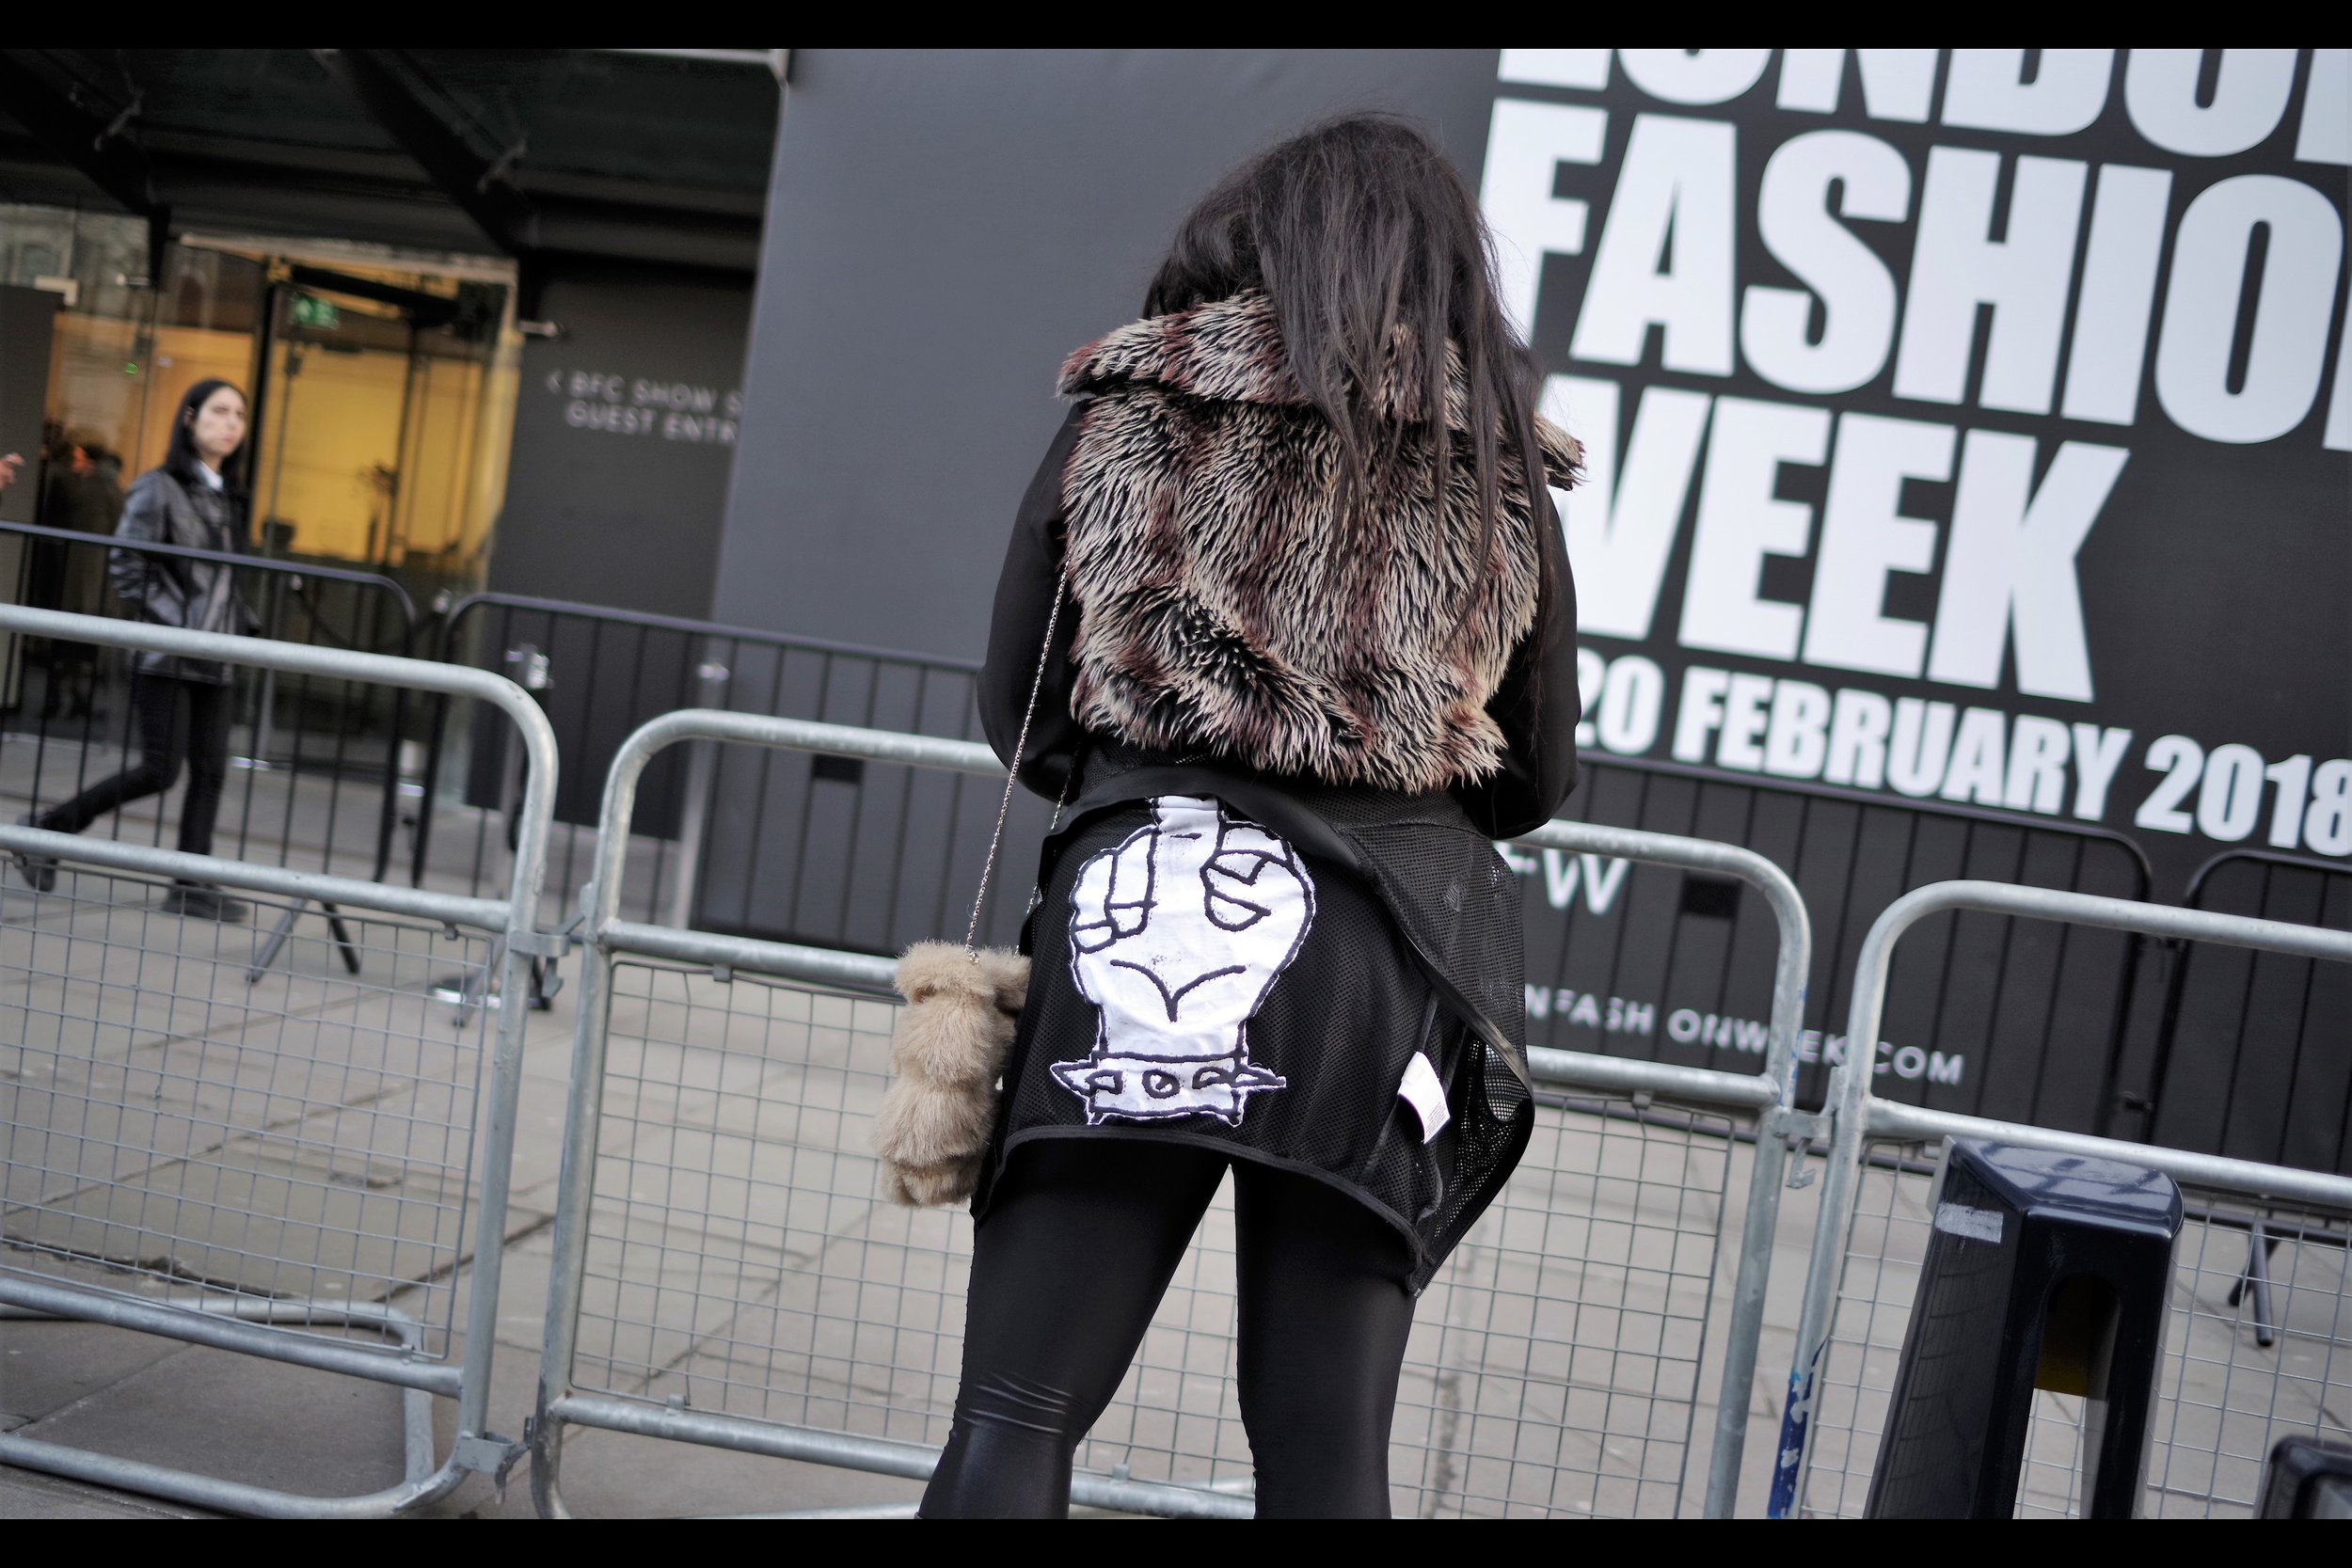 Ten out of ten for fashion.... three out of ten for wearing it appropriately.